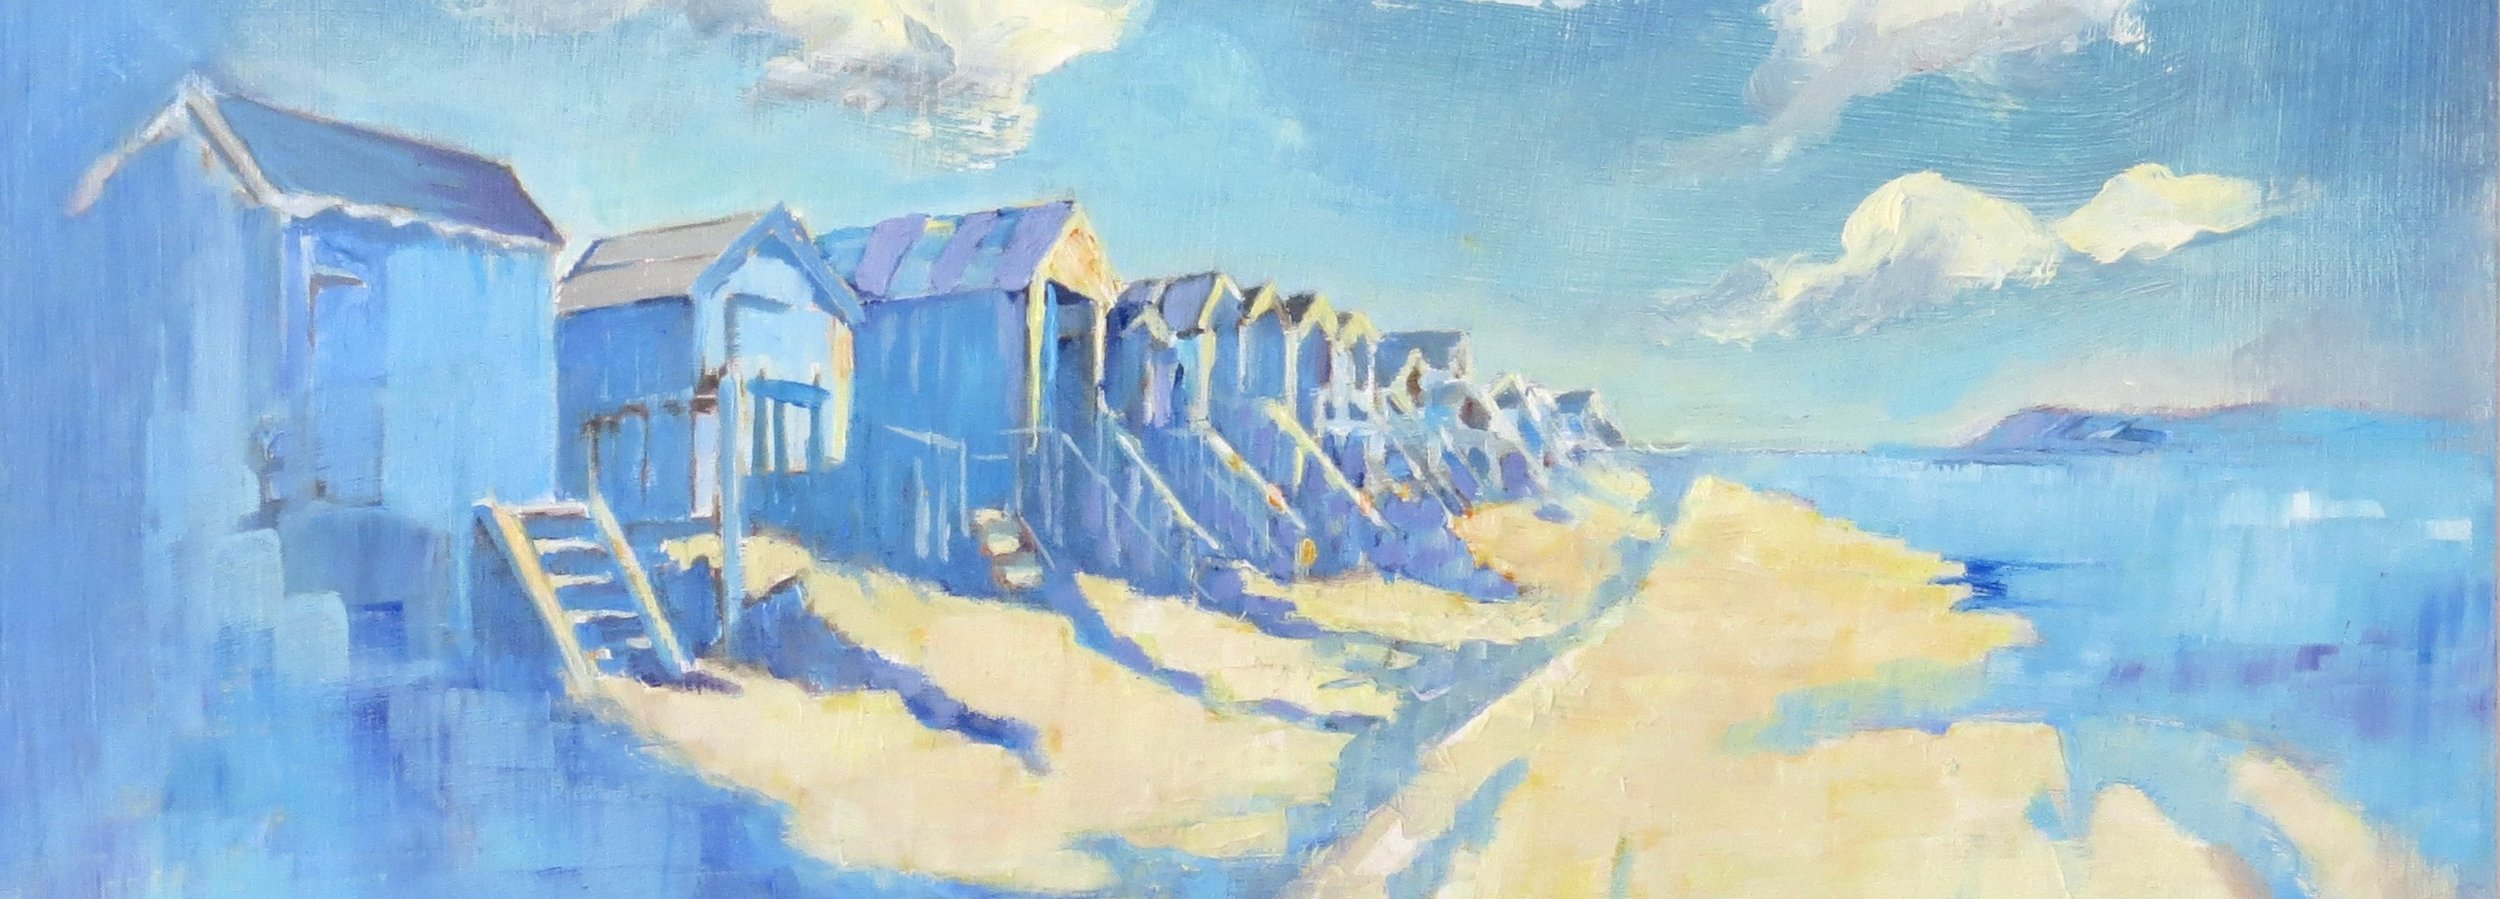 mary kemp. Beach hut wells oil on canvas panel 40 x 40 cm.jpg